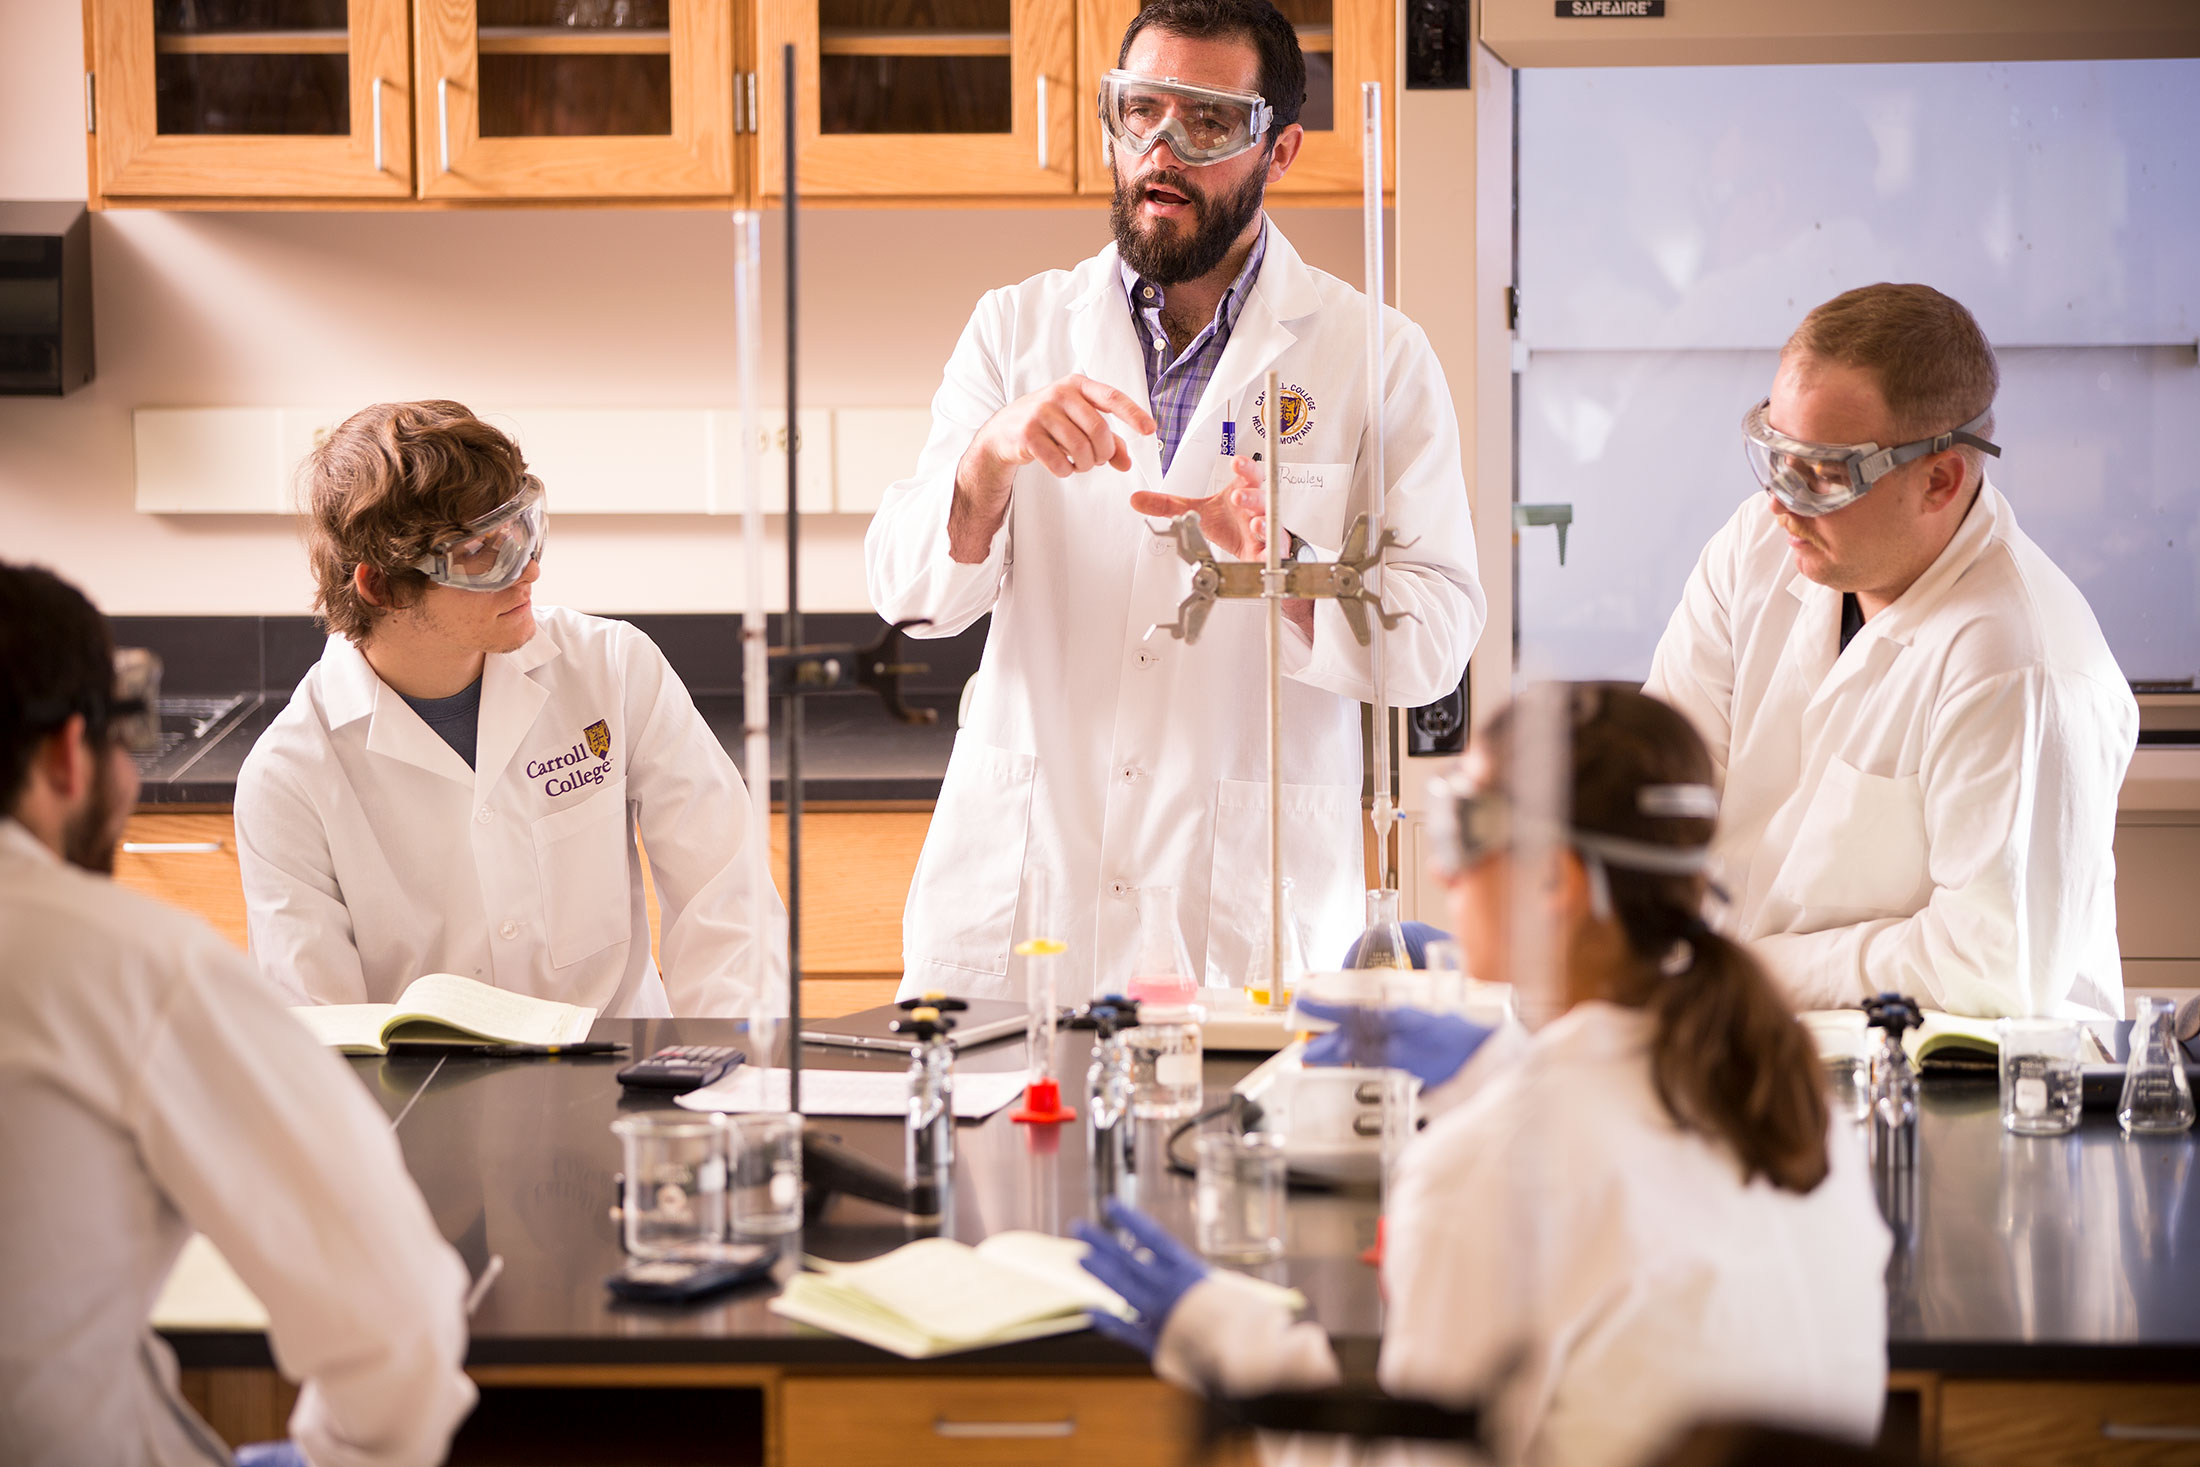 Dr. John Rowley teaching students in a lab